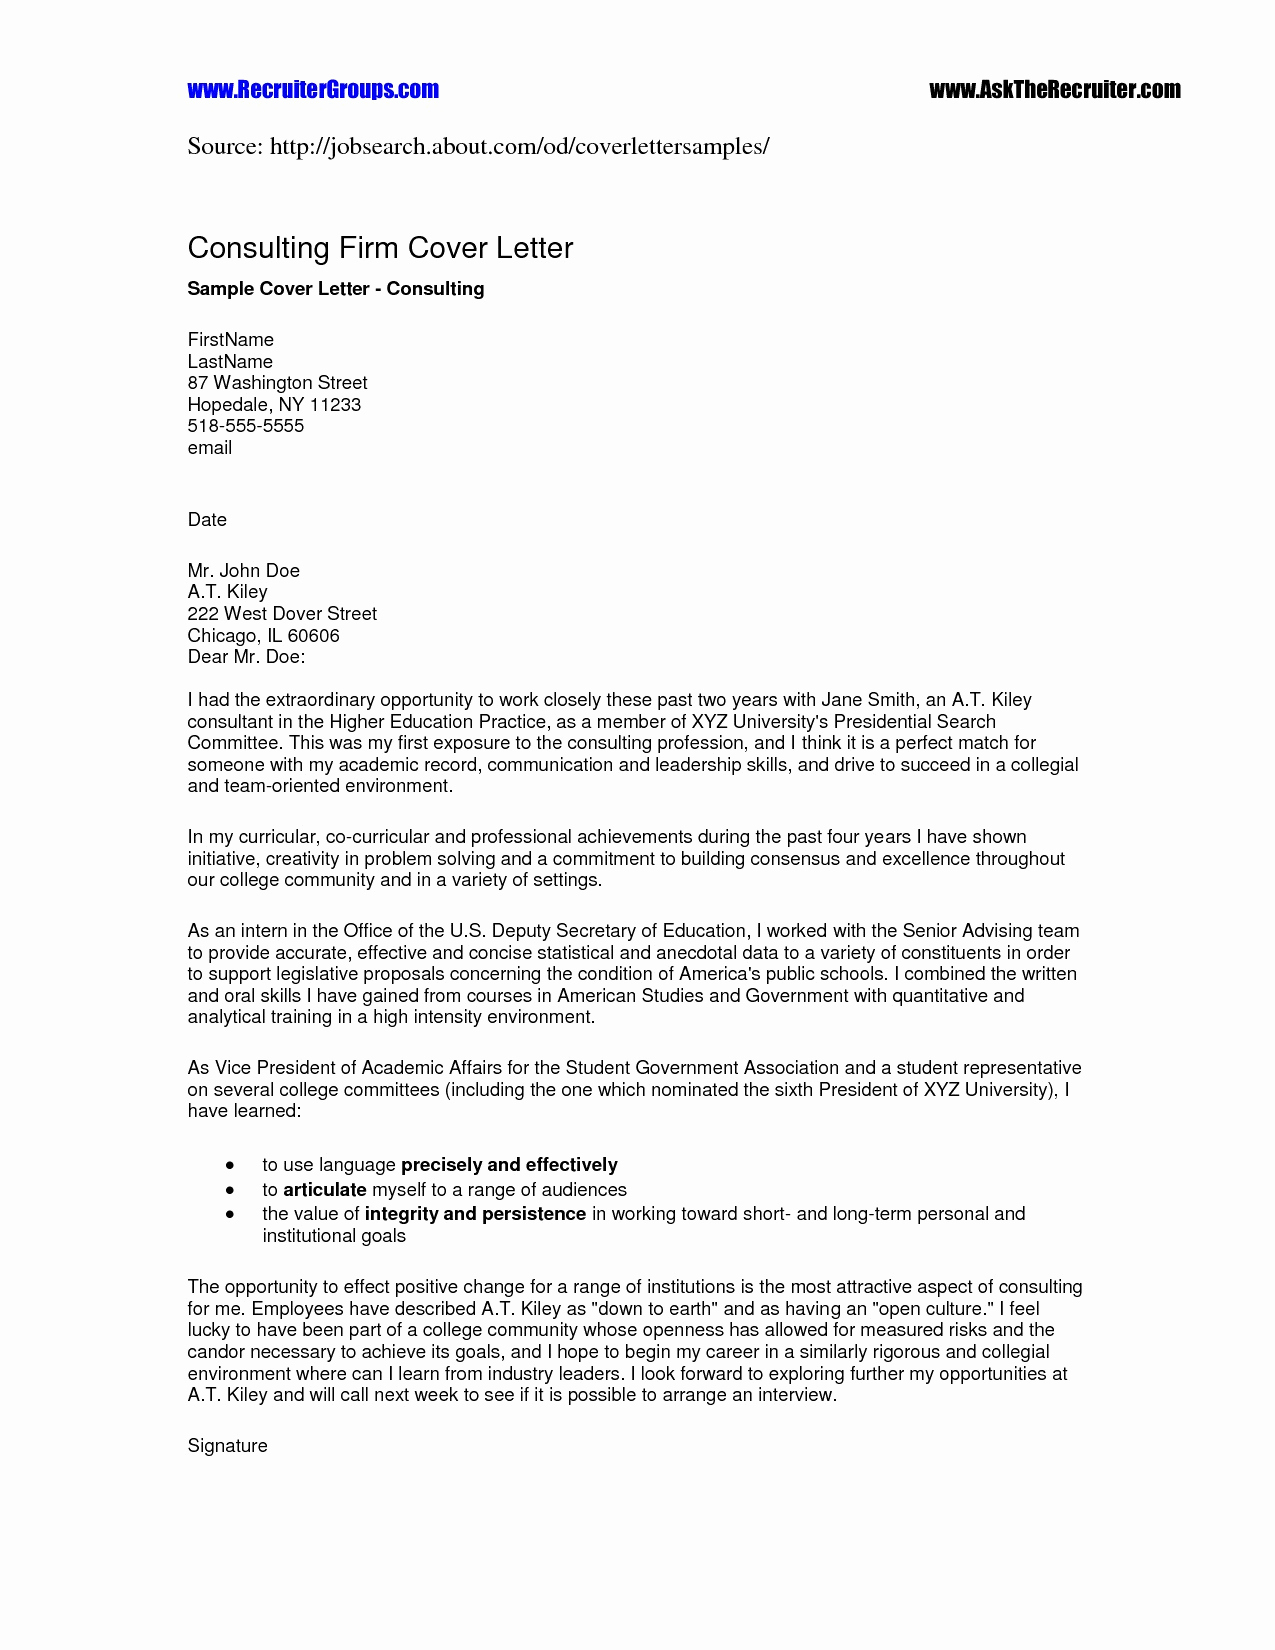 Professional Resignation Letter Template - Resignation Letter after Short Employment Beautiful Employment Fer